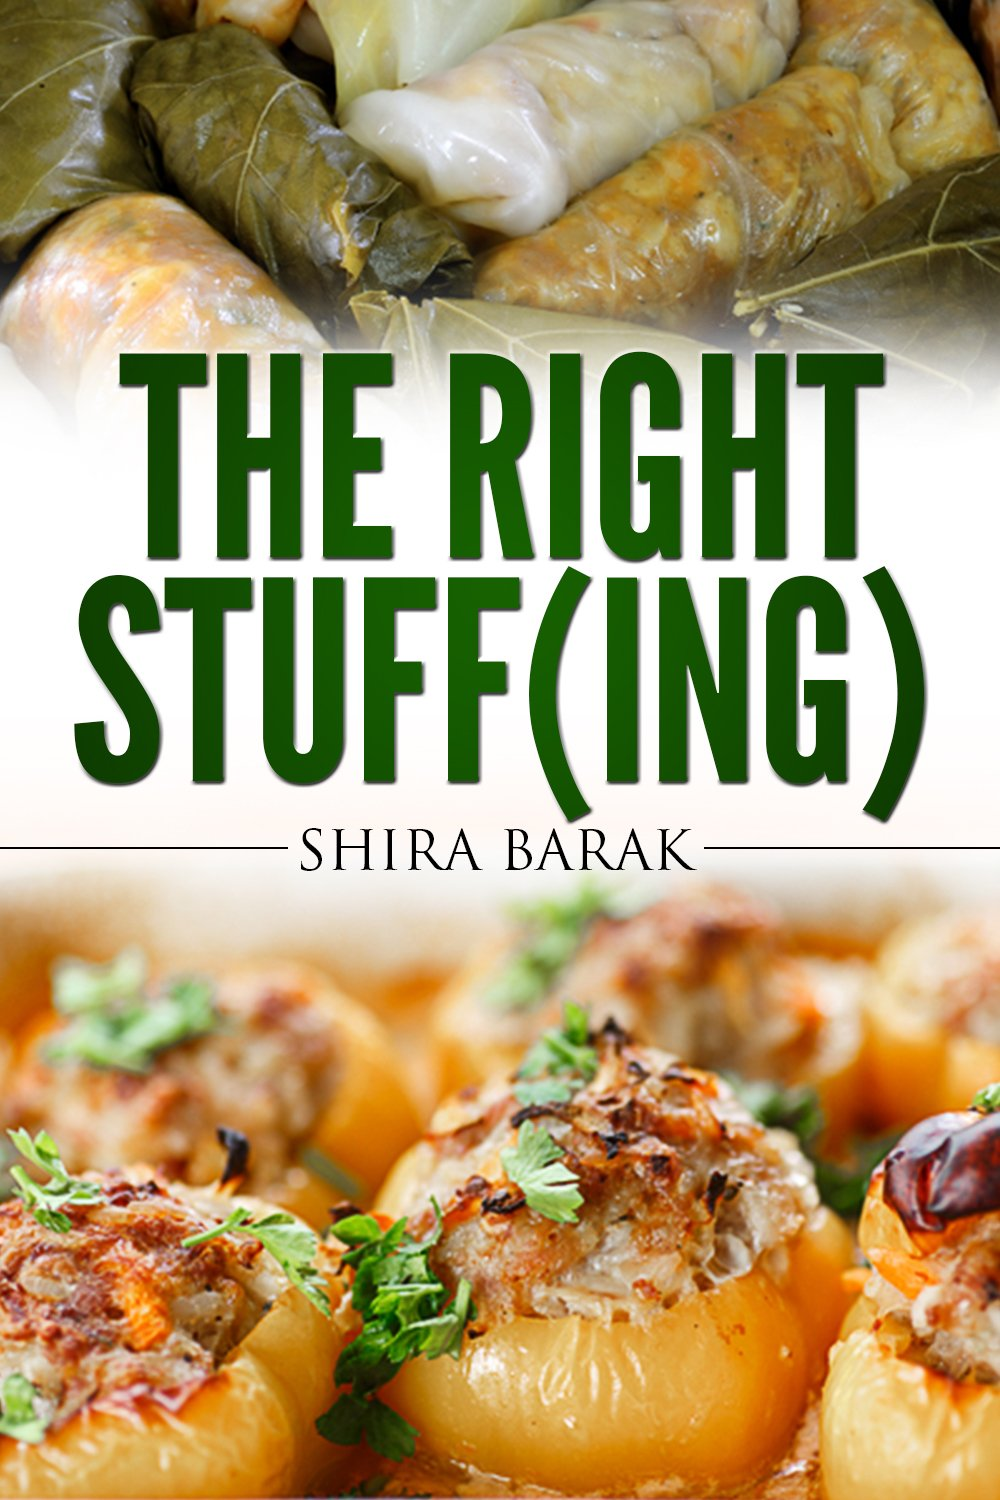 The Right Stuff(ing): Quick Slow Cooking-The Full Guide for Delicious Stuffed Dishes